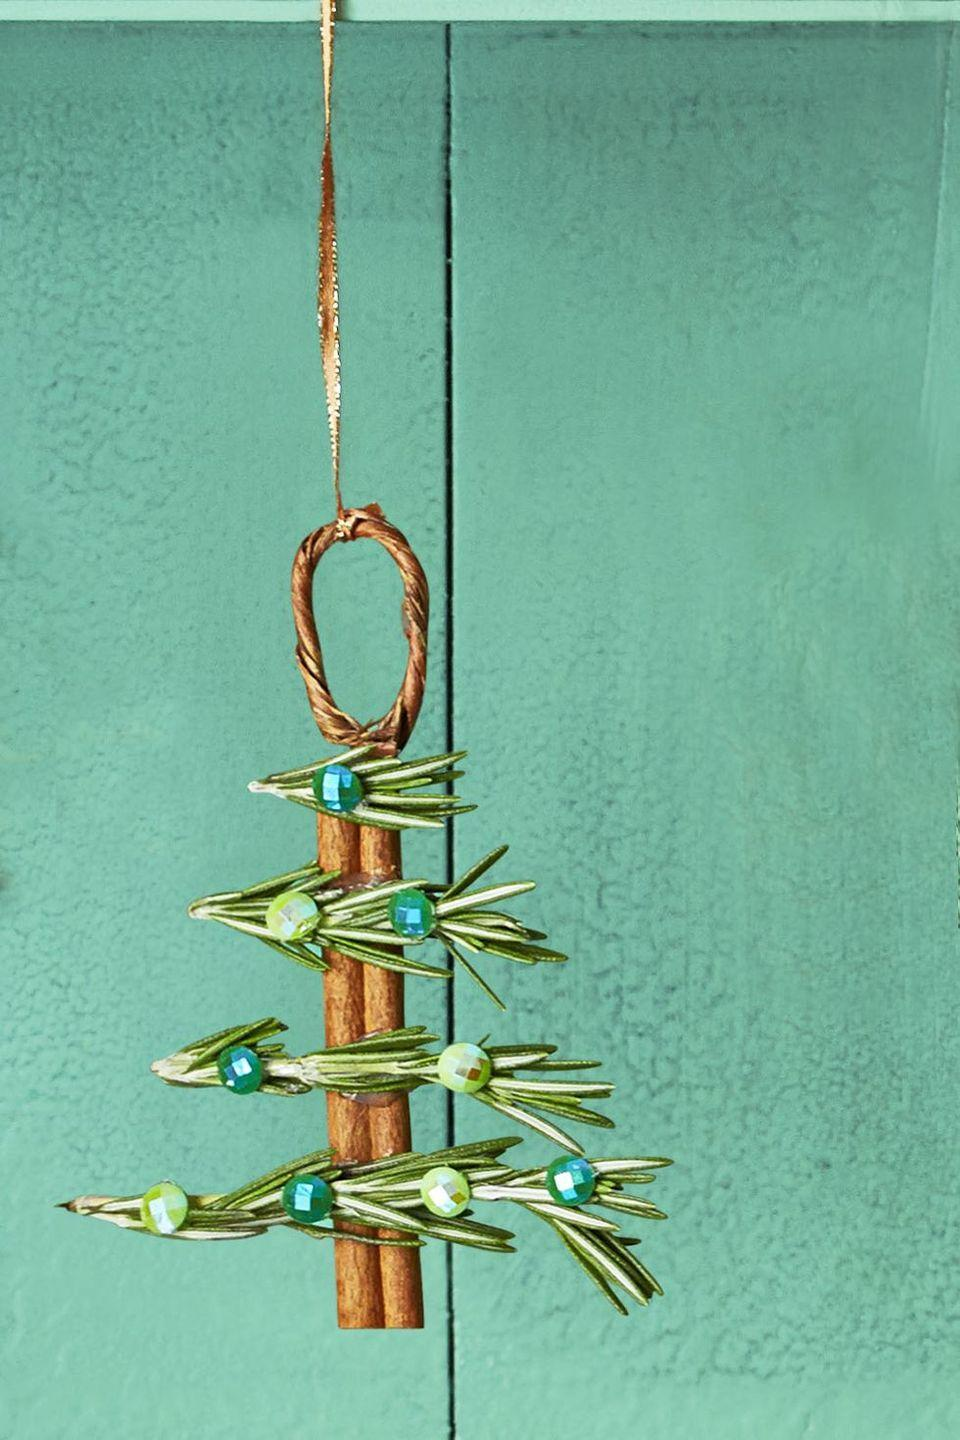 """<p>Not only does this easy-to-craft ornament look pretty, but it also smells great! Hot glue brings together rosemary, cinnamon sticks, and gemstones for a festive and eye-catching final look.</p><p><strong>Get the tutorial at <a href=""""https://www.goodhousekeeping.com/holidays/christmas-ideas/g393/homemade-christmas-ornaments/?slide=1"""" rel=""""nofollow noopener"""" target=""""_blank"""" data-ylk=""""slk:Good Housekeeping"""" class=""""link rapid-noclick-resp"""">Good Housekeeping</a>. </strong></p><p><strong><a class=""""link rapid-noclick-resp"""" href=""""https://www.amazon.com/s?k=cinnamon+stick&i=grocery&ref=nb_sb_noss&tag=syn-yahoo-20&ascsubtag=%5Bartid%7C10050.g.1070%5Bsrc%7Cyahoo-us"""" rel=""""nofollow noopener"""" target=""""_blank"""" data-ylk=""""slk:SHOP CINNAMON STICKS"""">SHOP CINNAMON STICKS</a><br></strong></p>"""